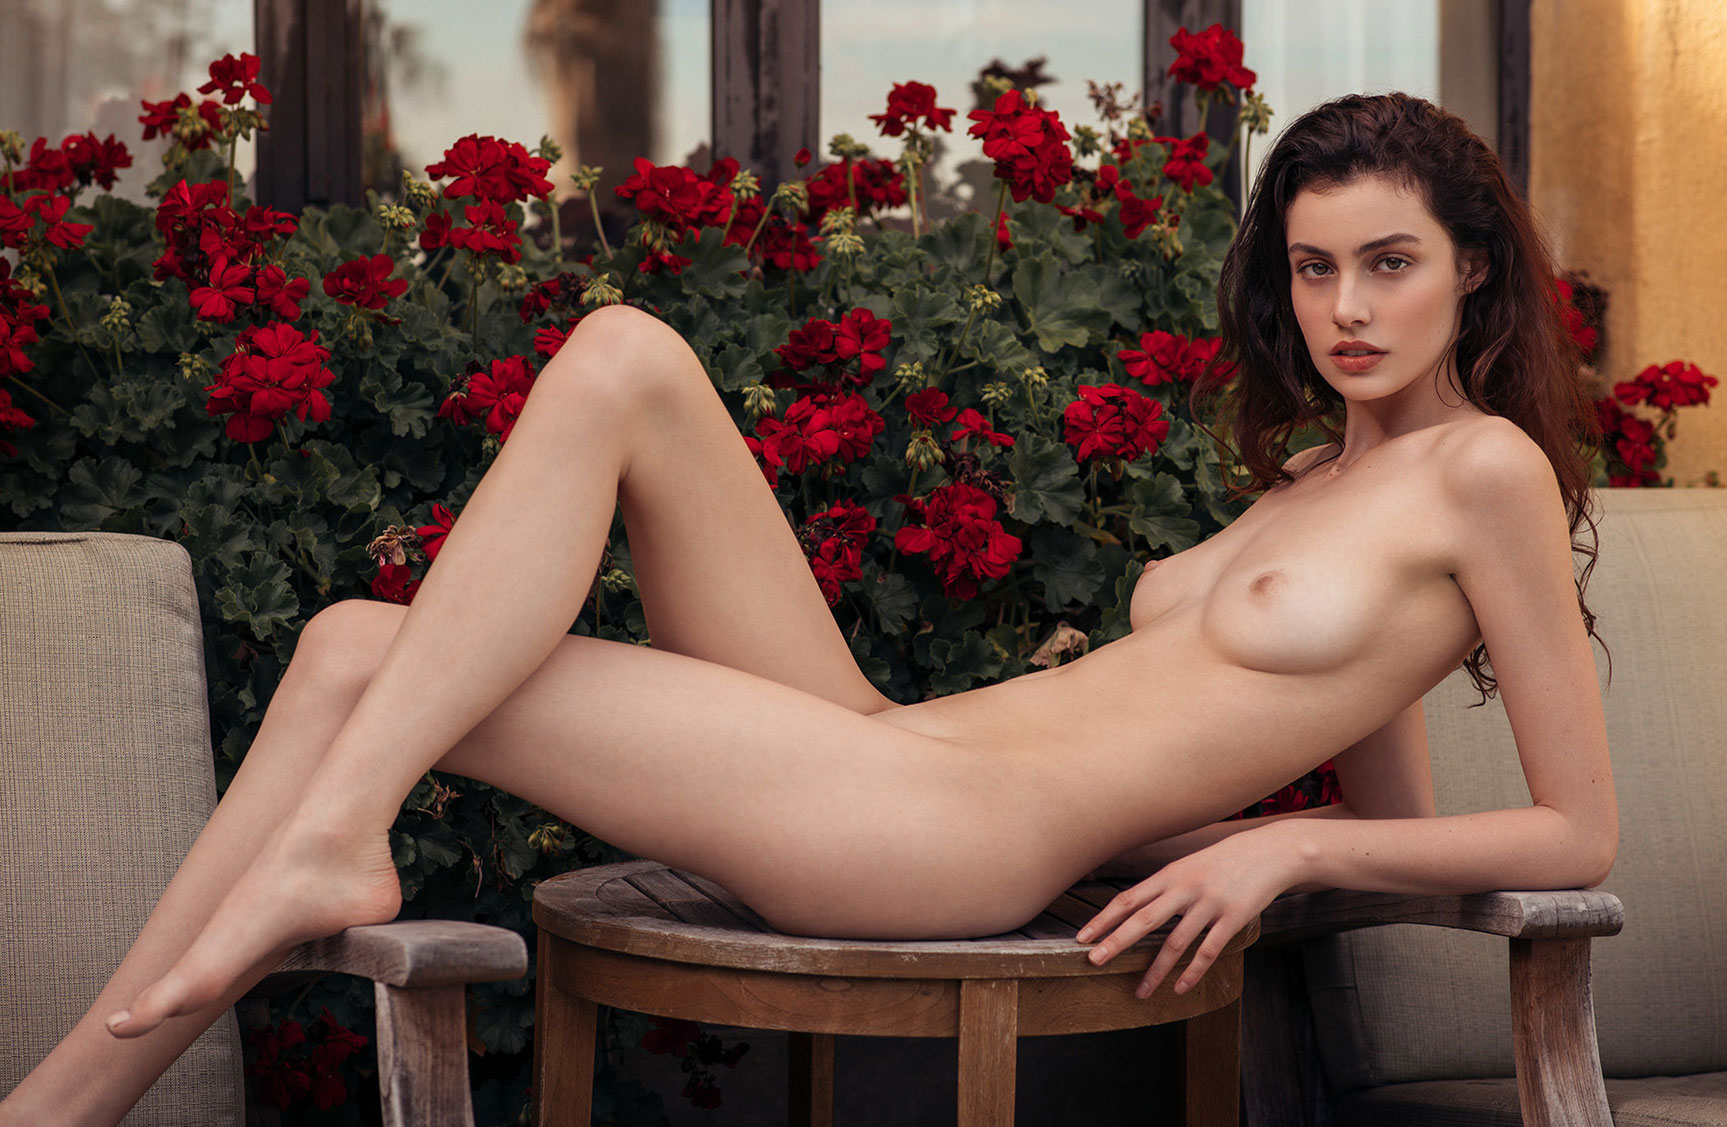 обнаженная модель Сера Манн / Sera Mann nude by Christopher von Steinbach - Playboy USA may/june 2017